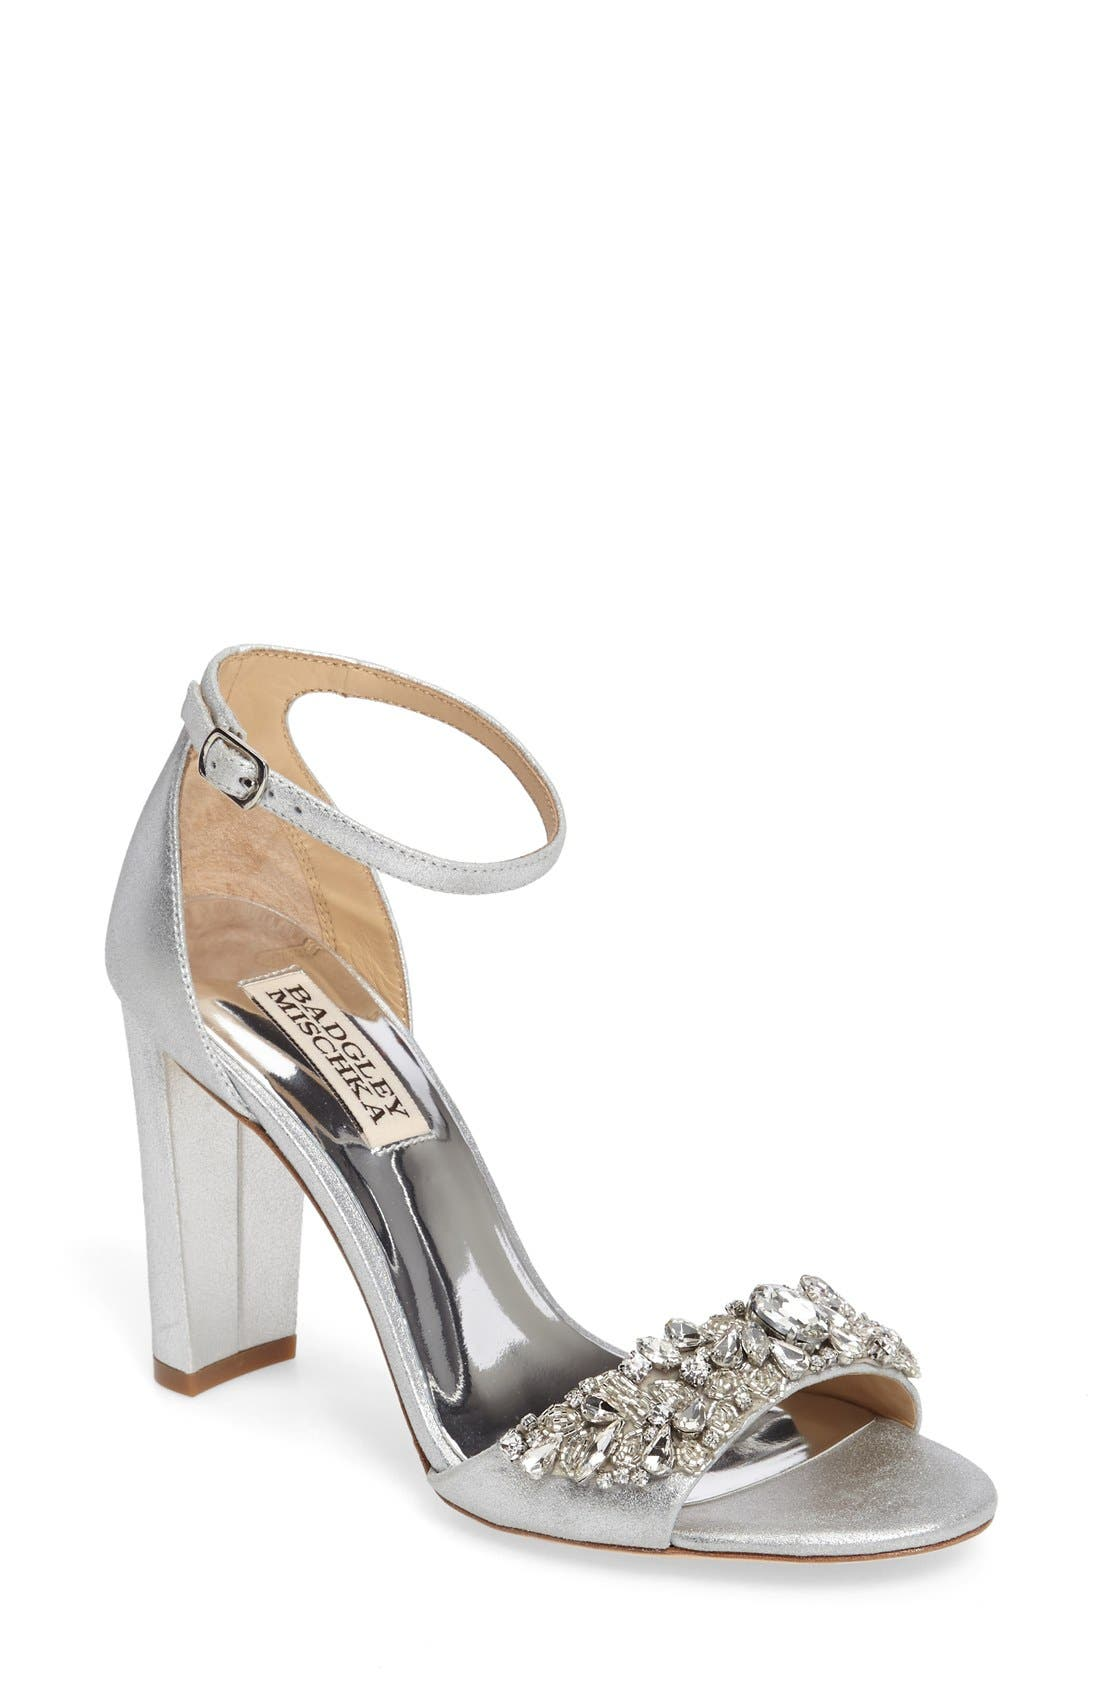 Barby Ankle Strap Sandal,                         Main,                         color, 044